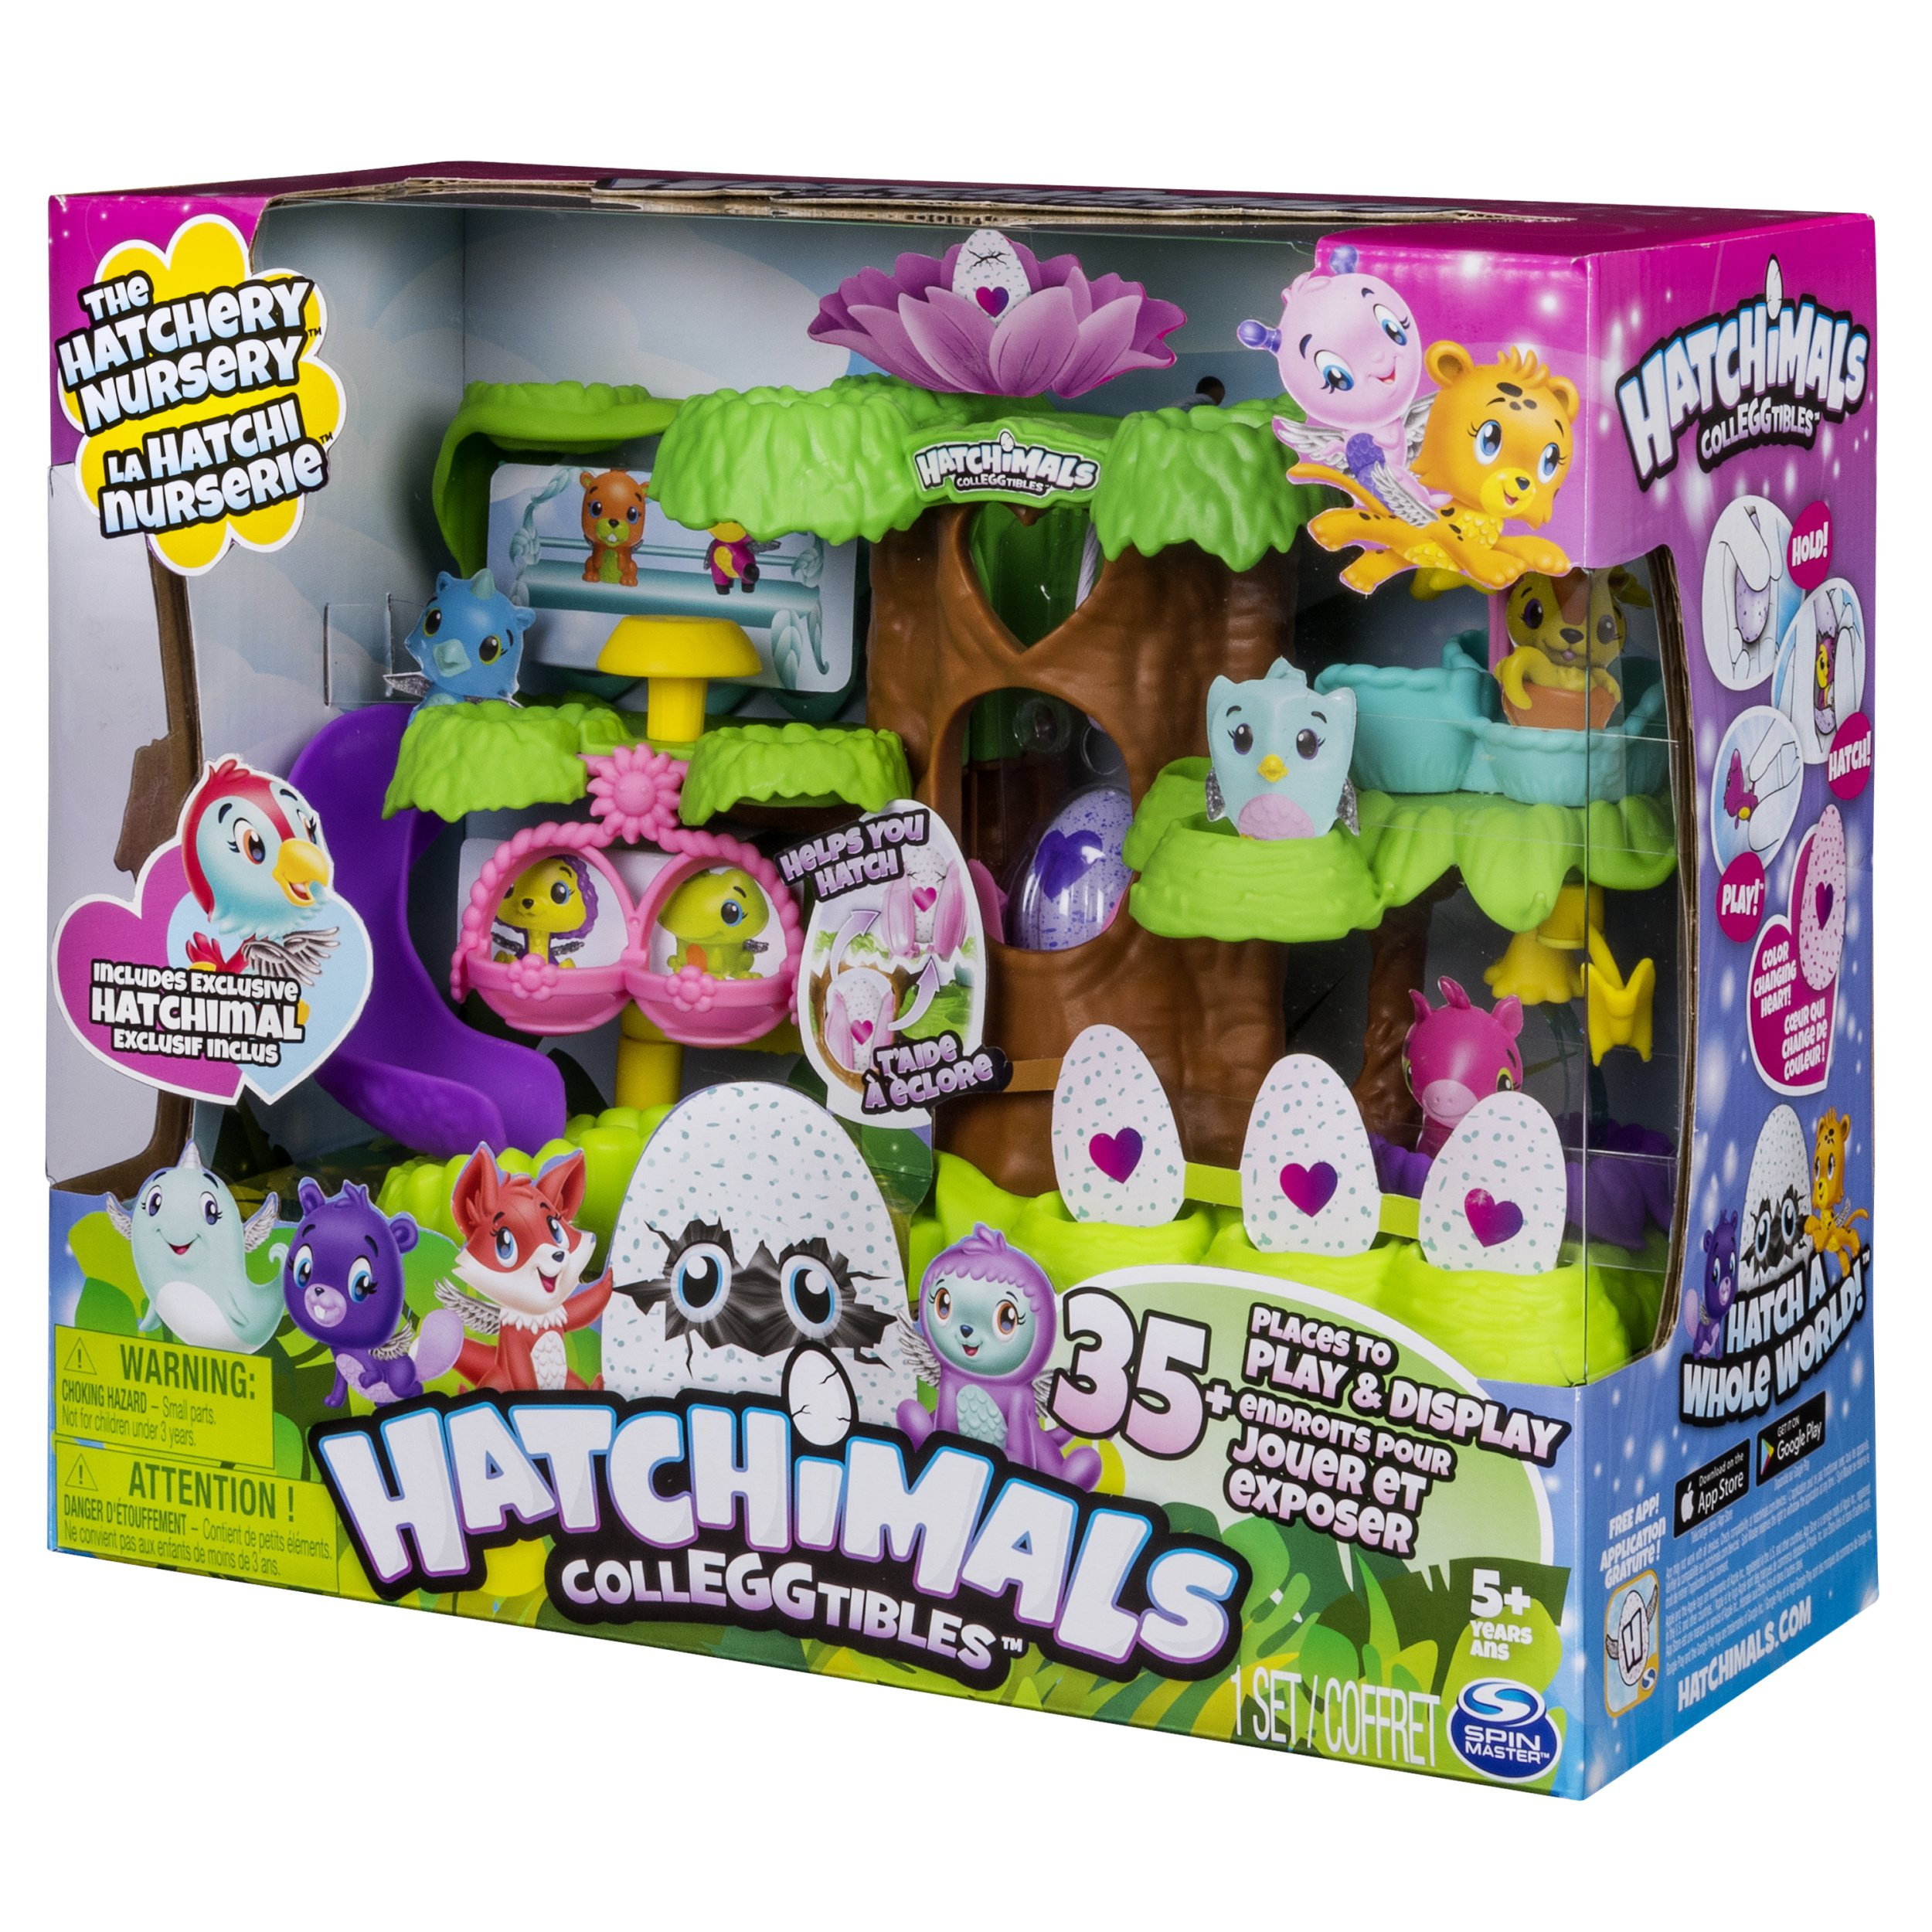 Hatchimals Nursery Playset 0778988665848/